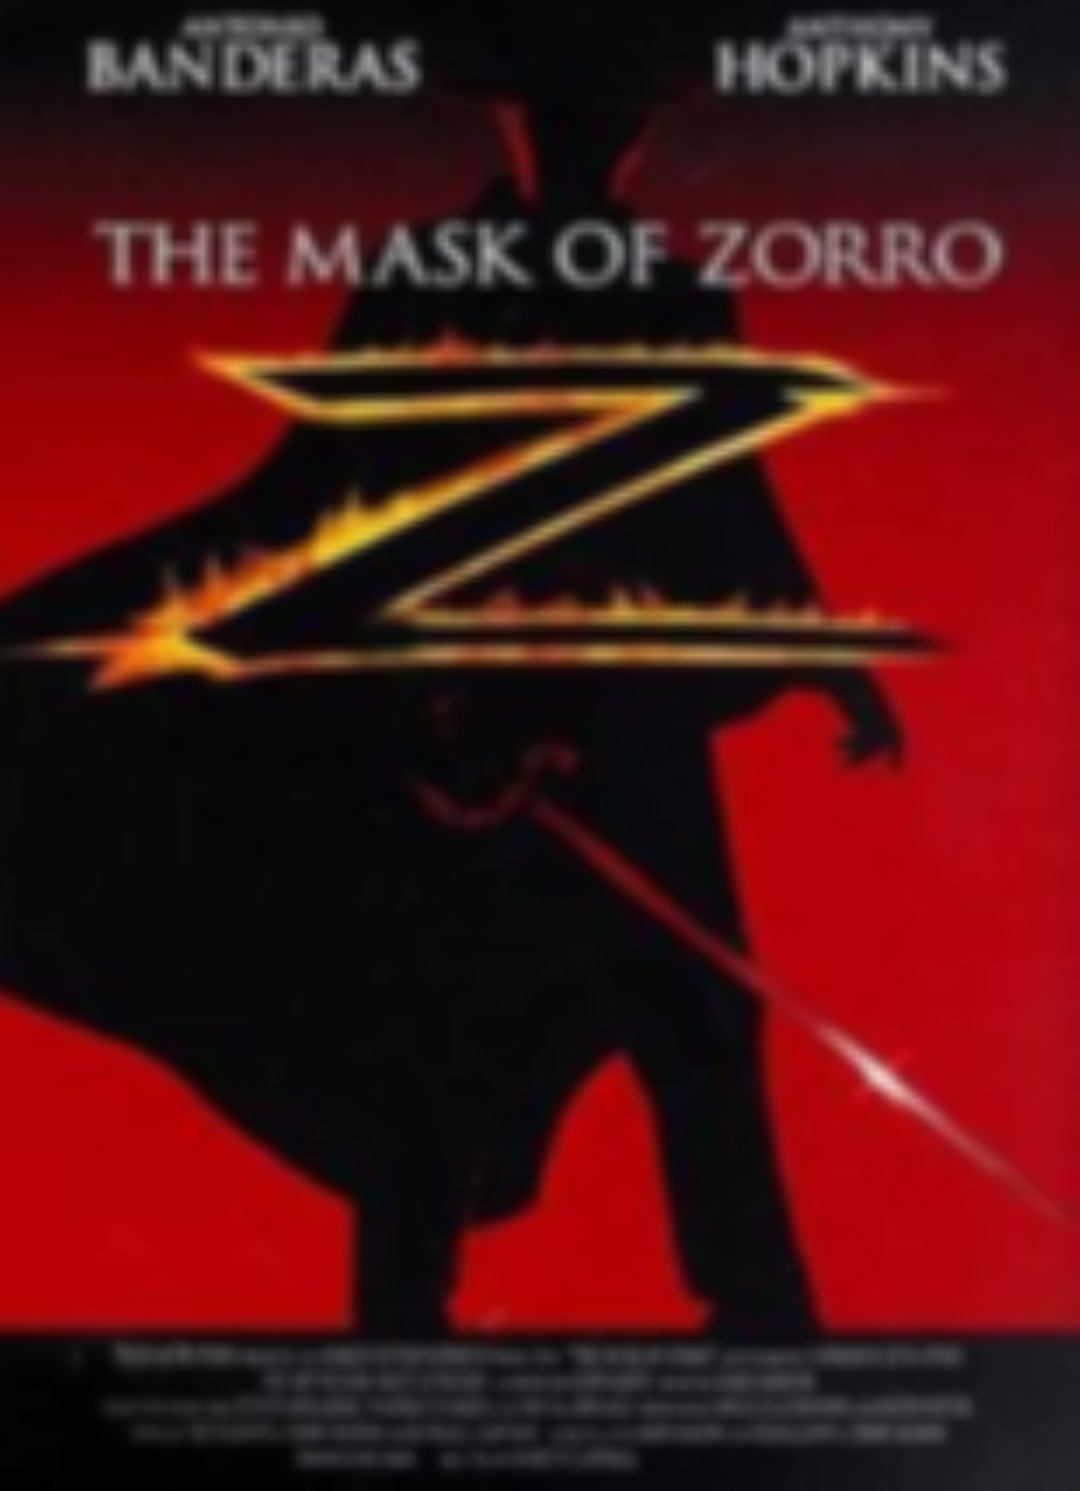 The Mask of Zorro Vhs